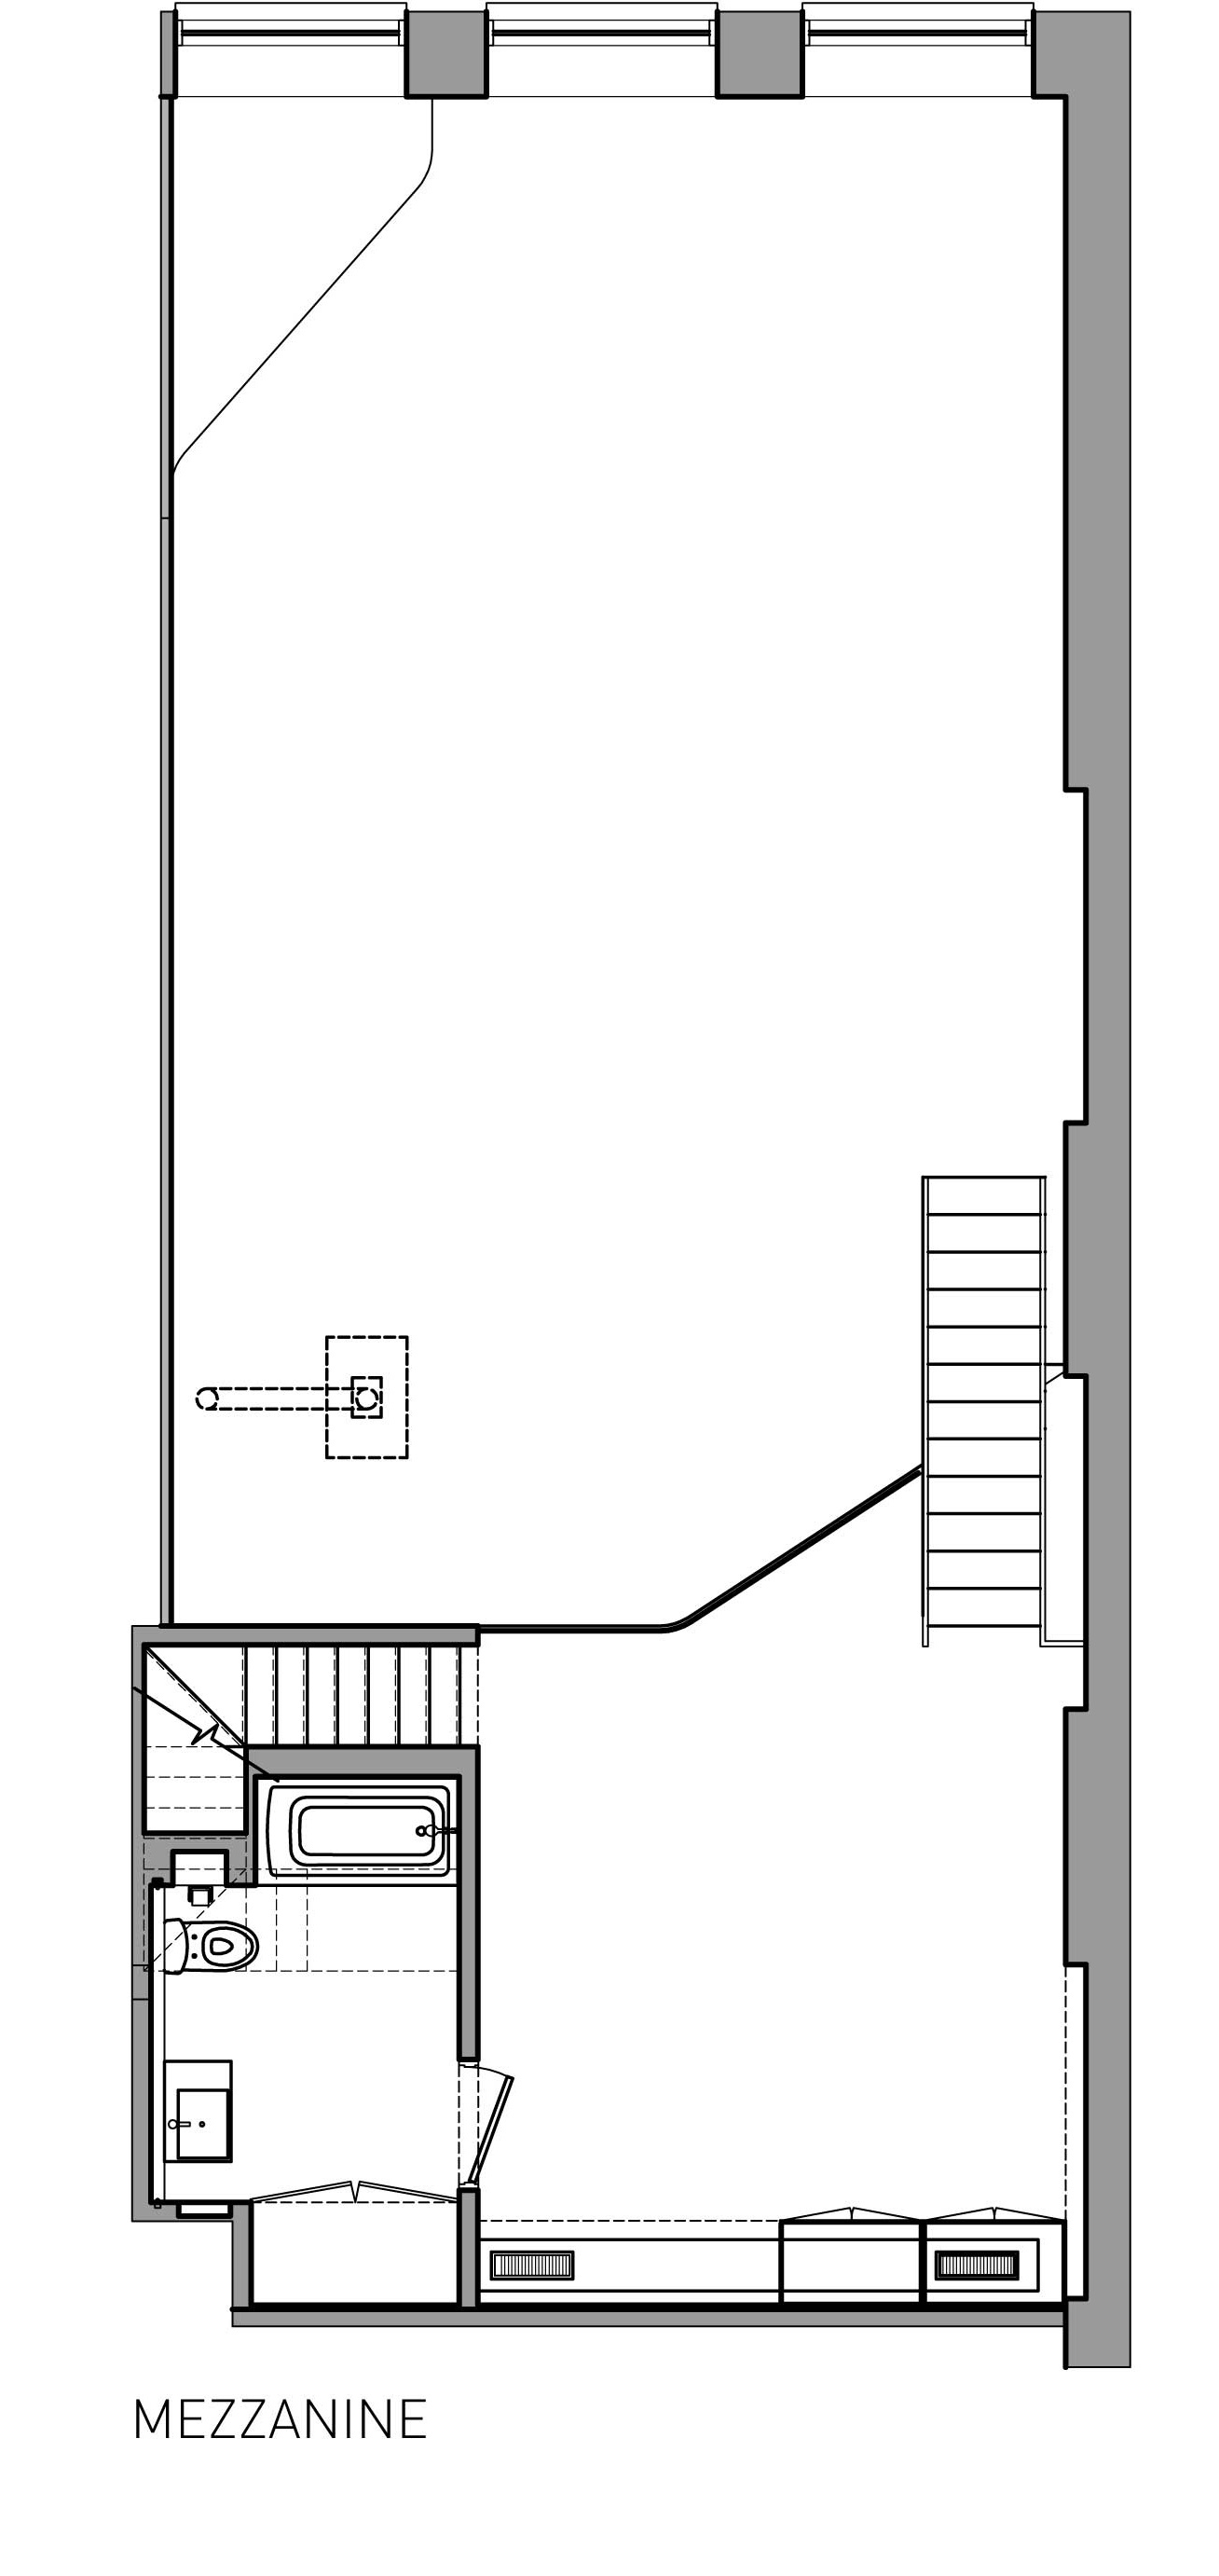 Mezzanine plan home design for House plans with mezzanine floor